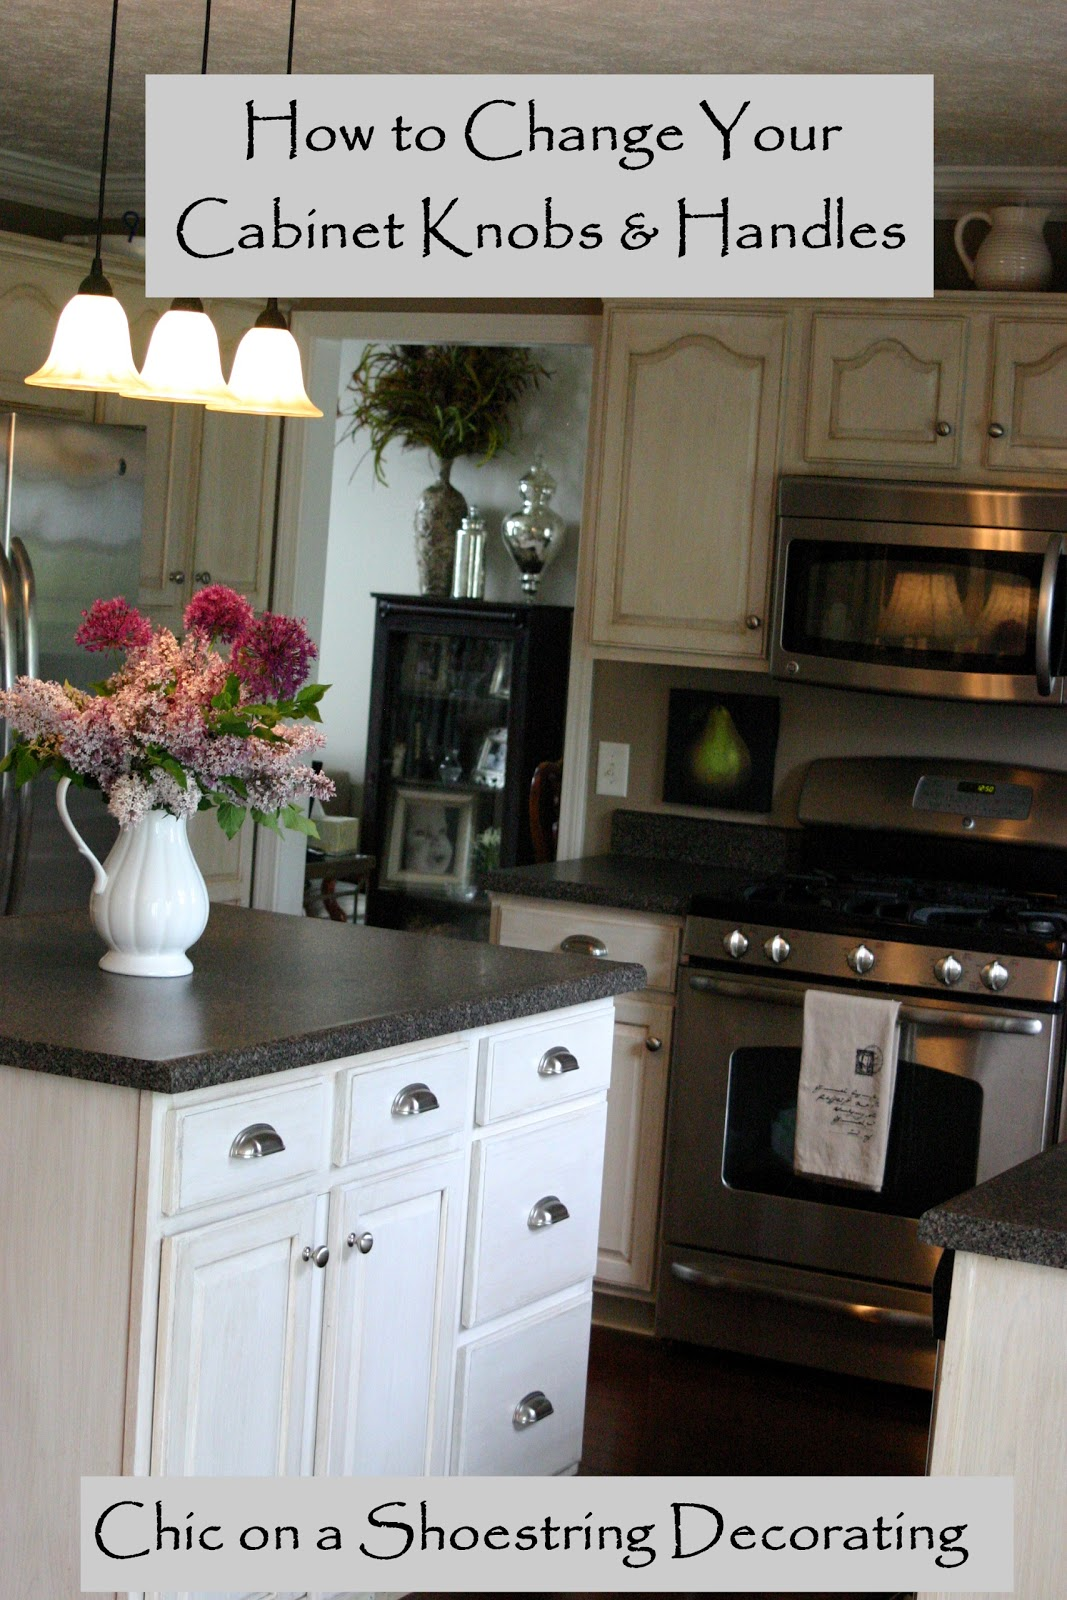 handles and pulls for kitchen cabinets chic on a shoestring decorating how to change your 8368